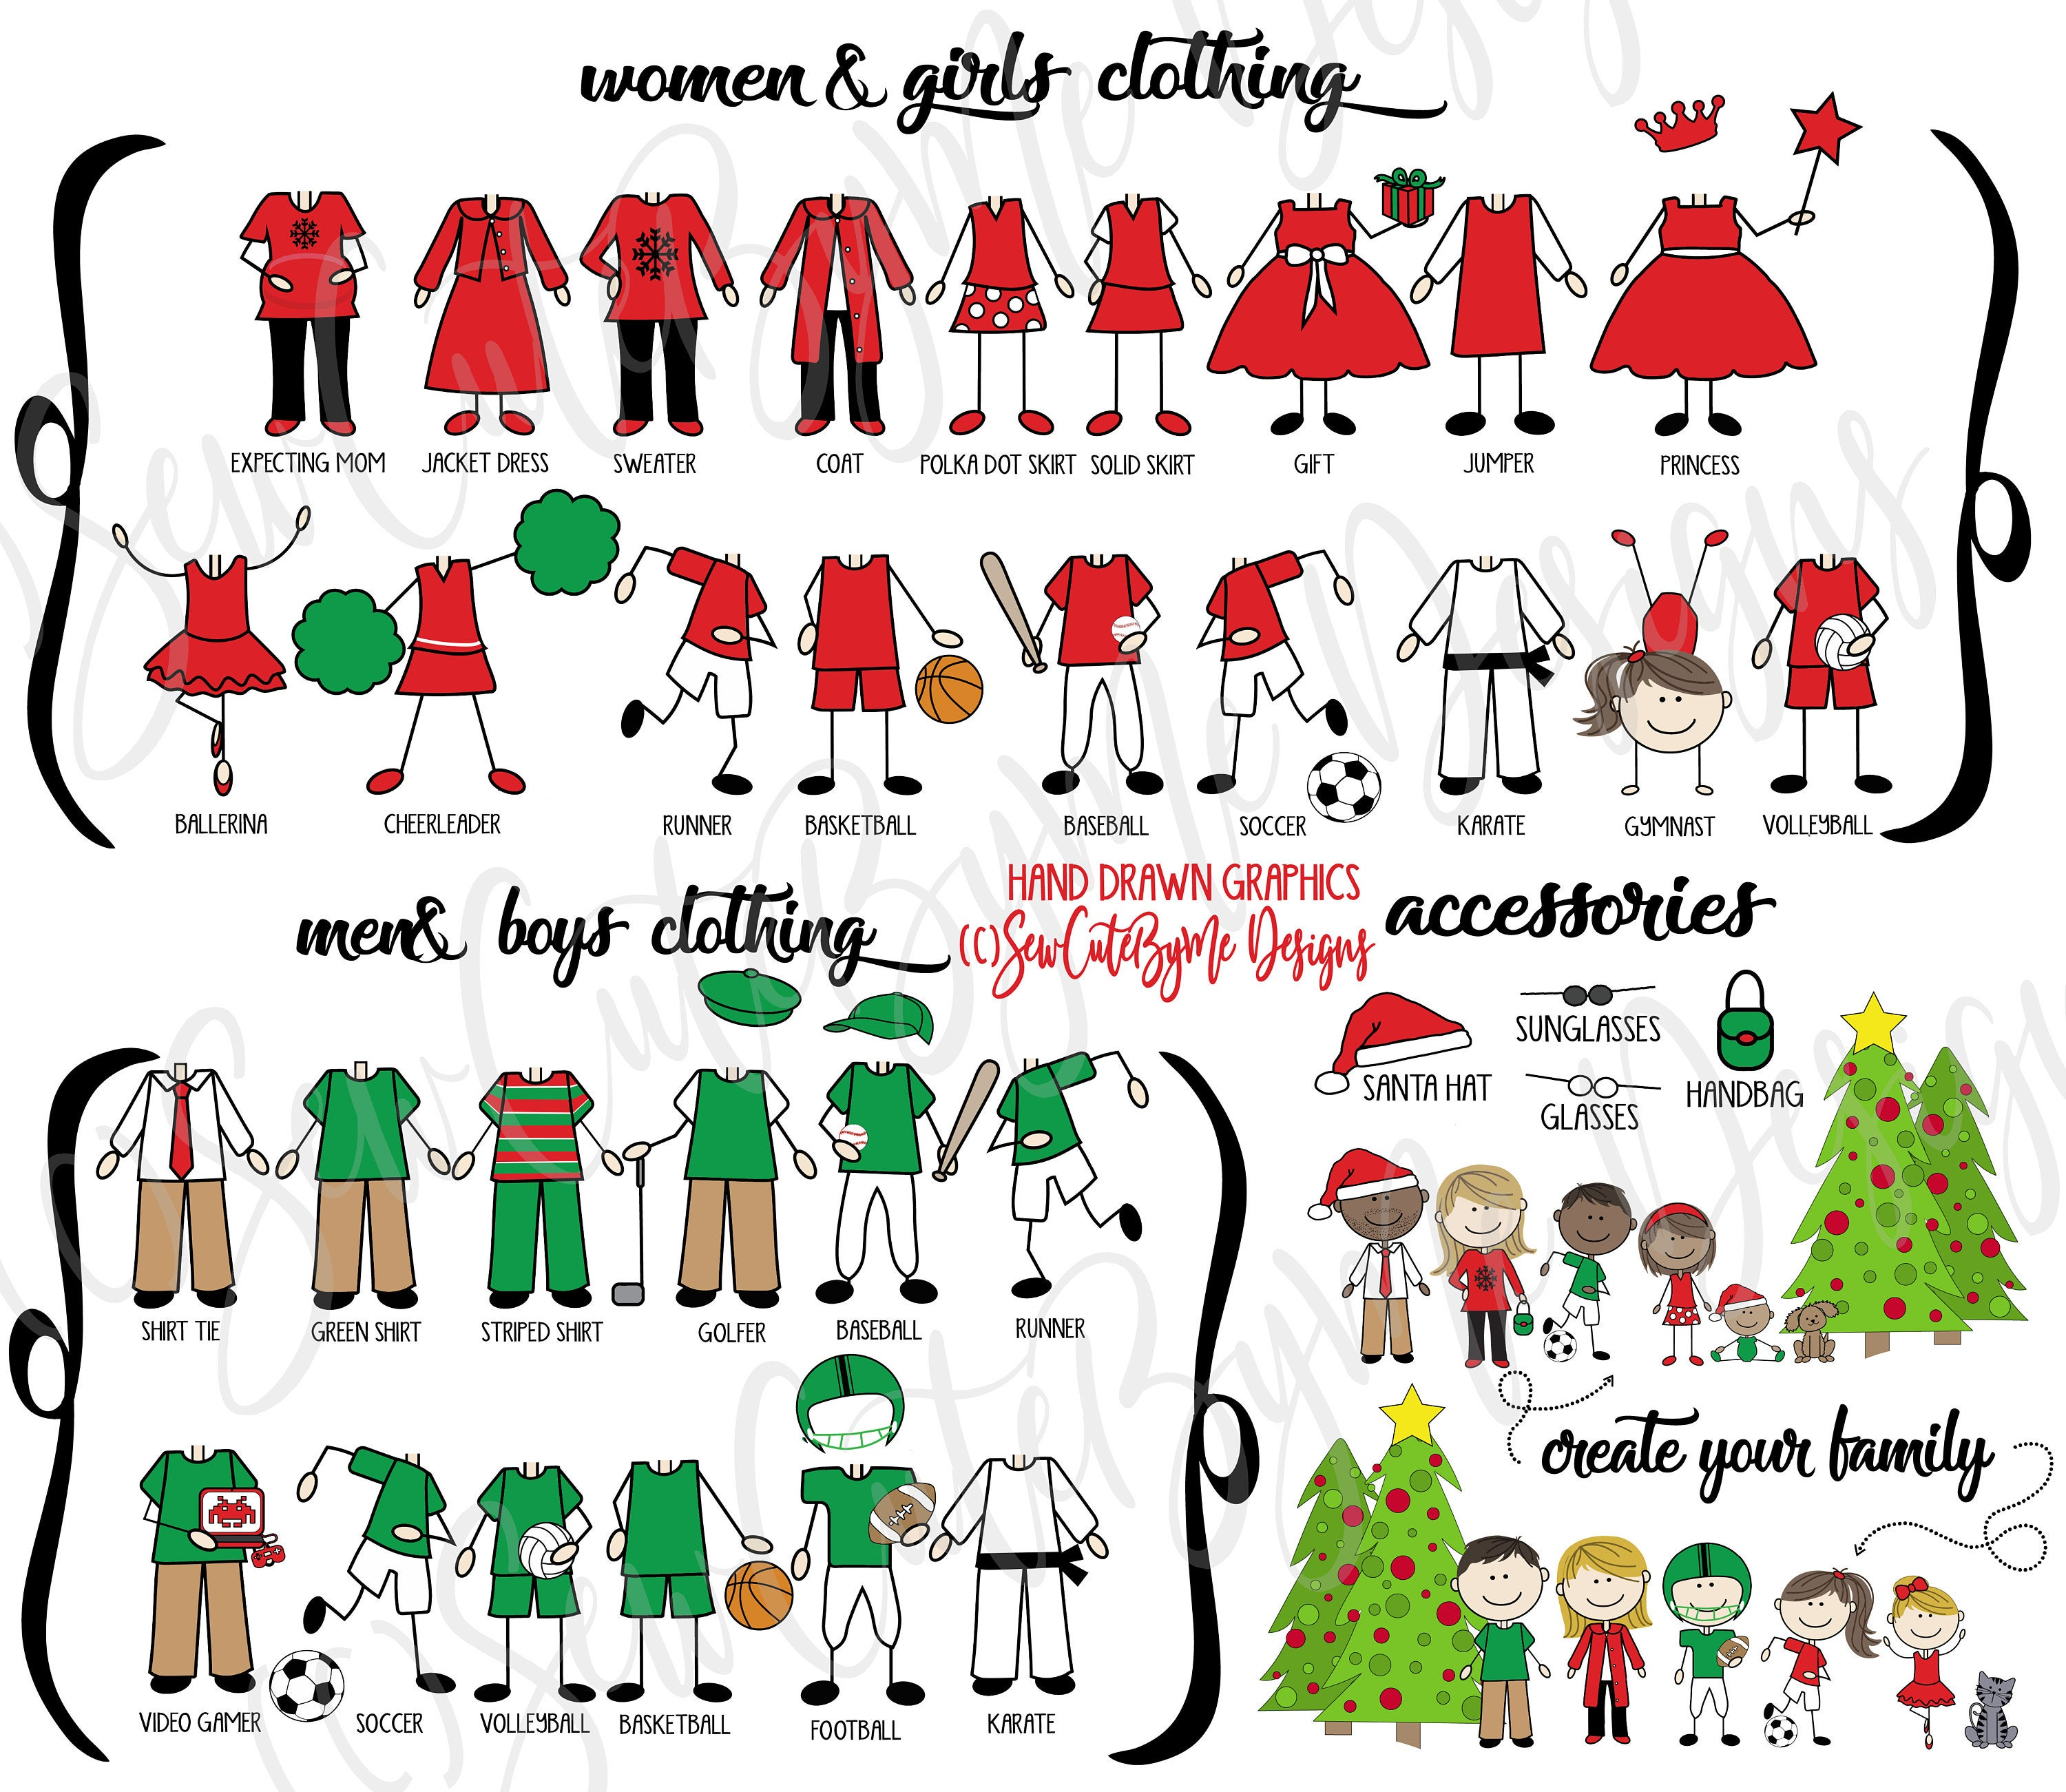 family portrait Christmas ornament choices - outfits and accessories - our family